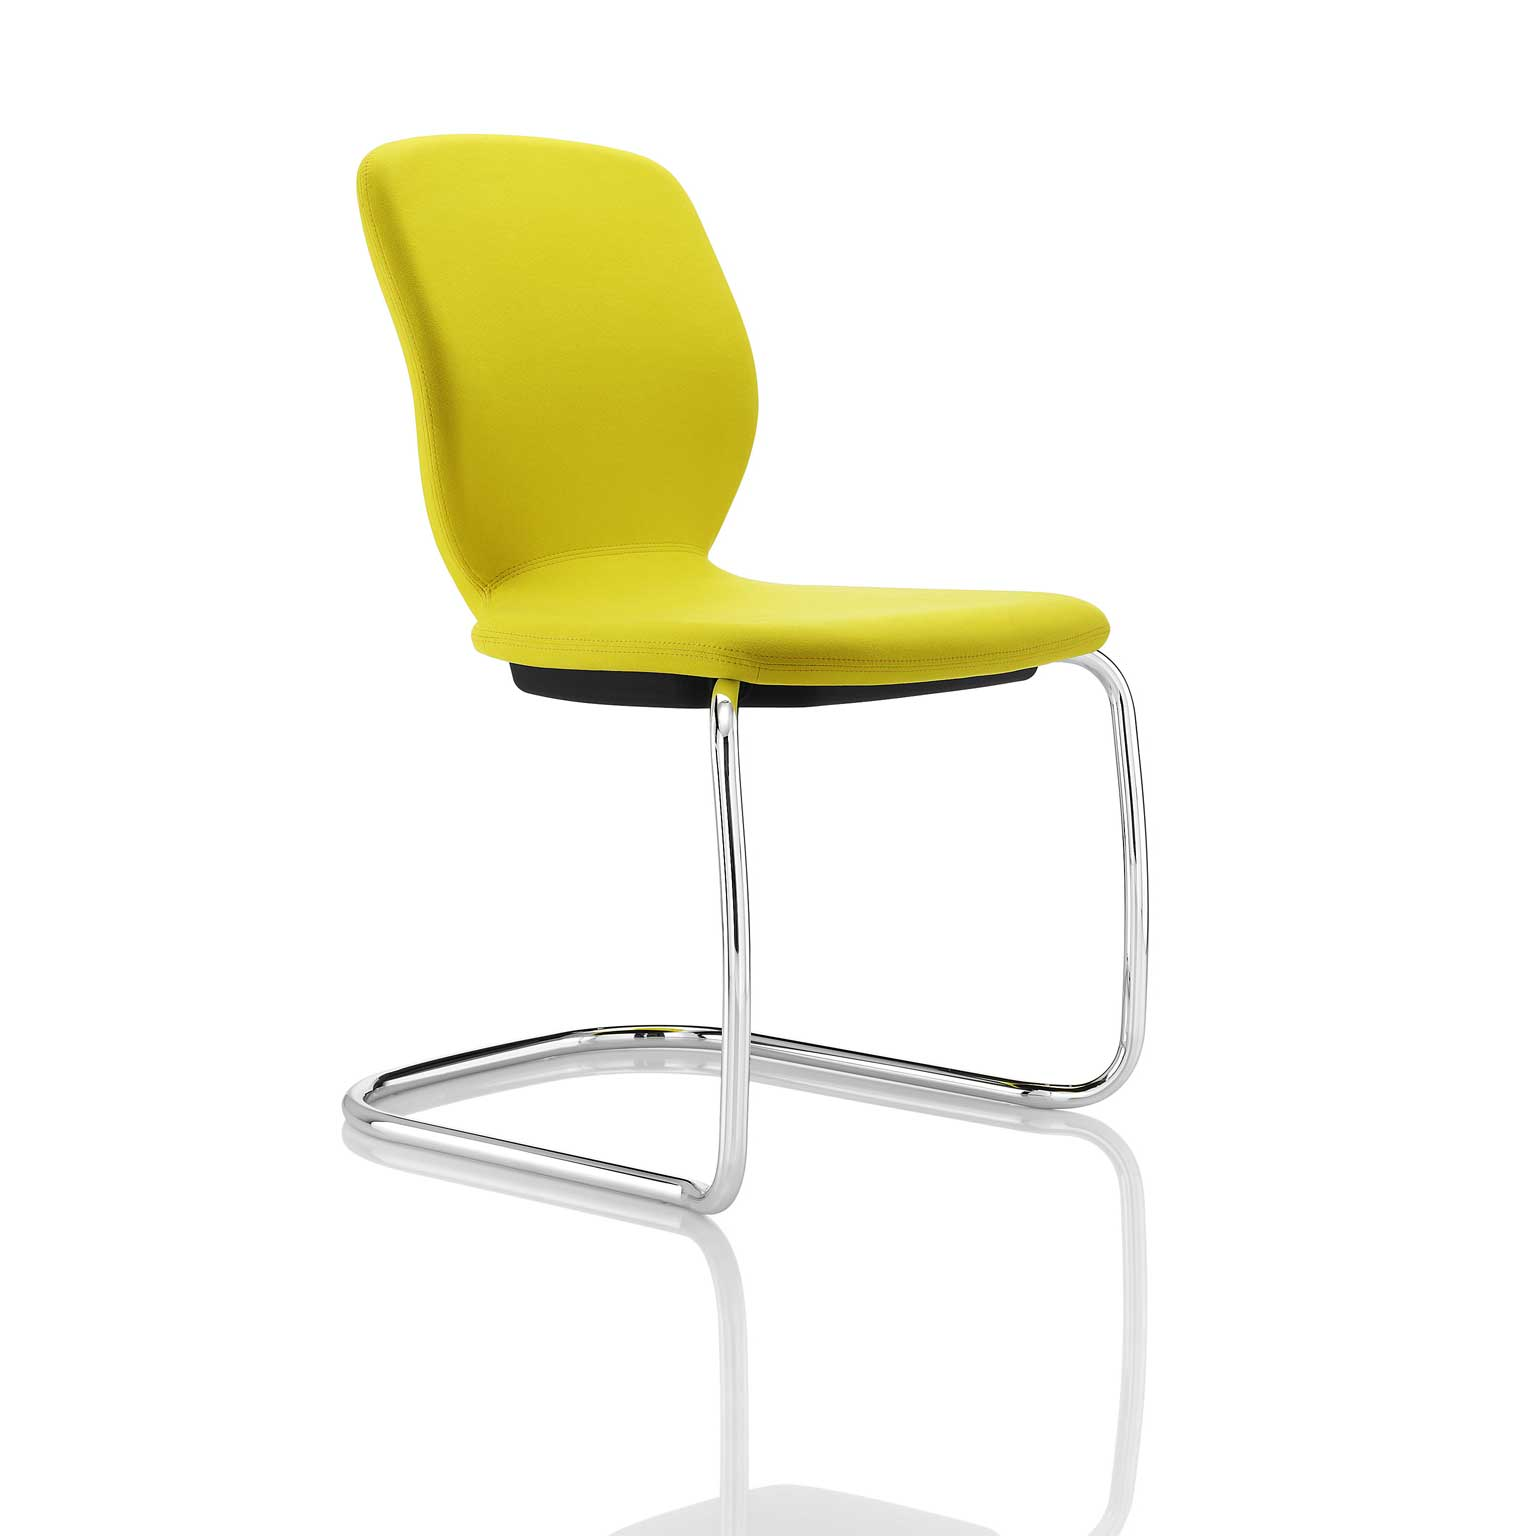 Boss stylish yellow cantilever visitors seat